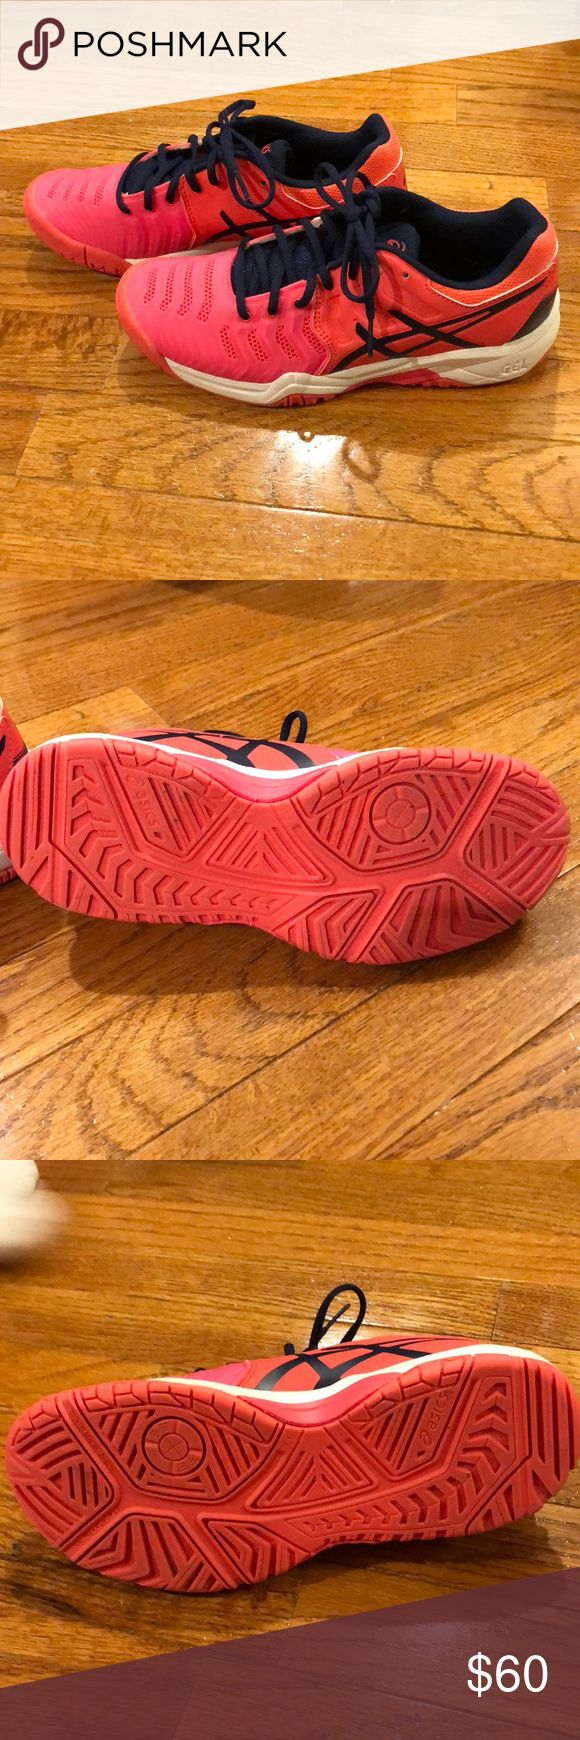 Women's Gel Resolution 7's by ASICS sz 5 Women's ASICS Gel Resolution 7 size 5 in EXCELLENT condition only worn 2 day on inside basketball court   Perfect for Tennis or Volleyball . From smoke free pet free home Asics Shoes Athletic Shoes